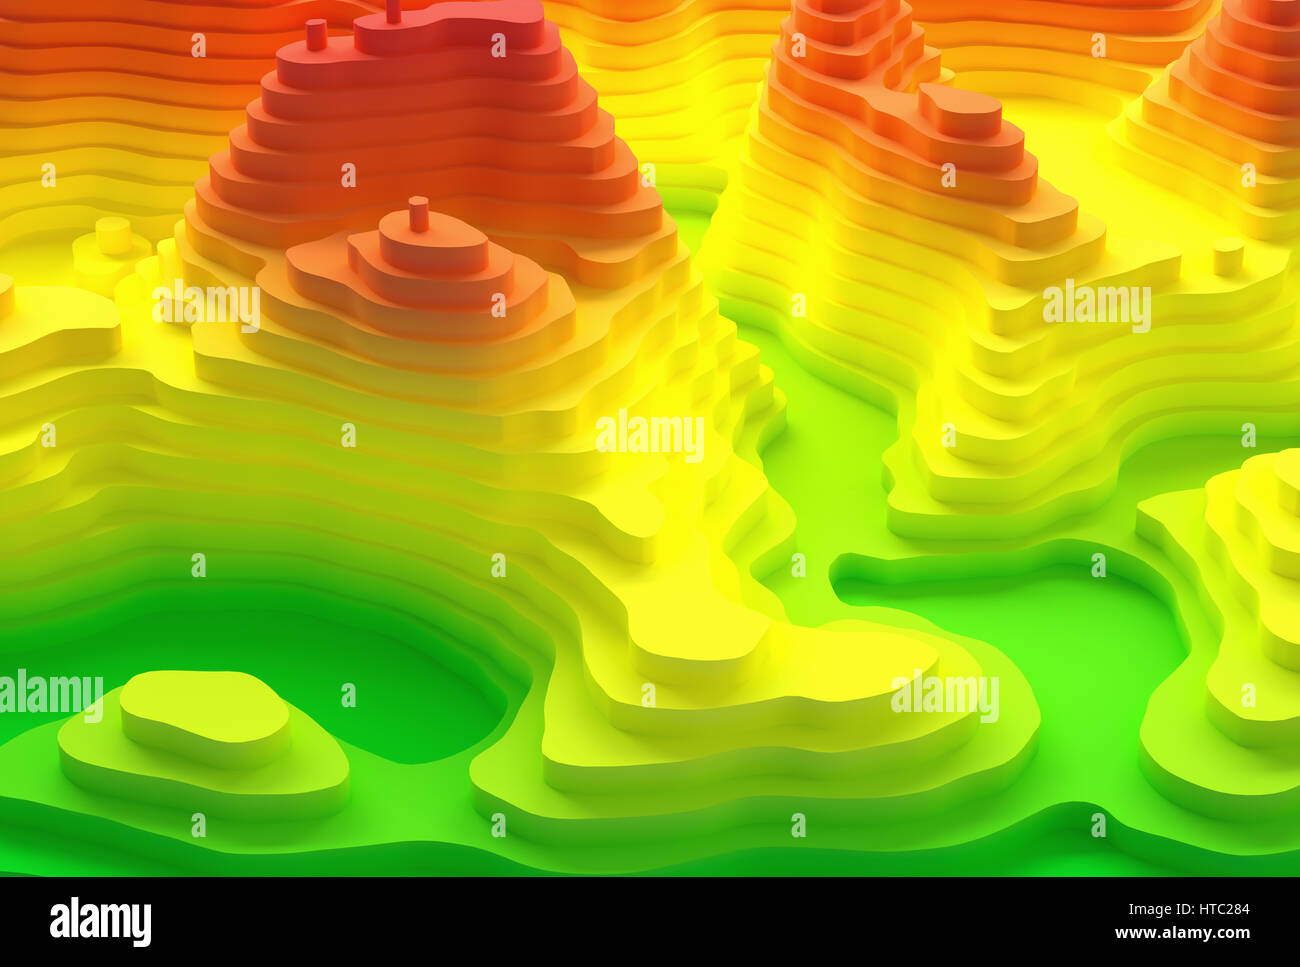 3D illustration. Topographical map of an island. Elevation in colors from blue to red. Stock Photo